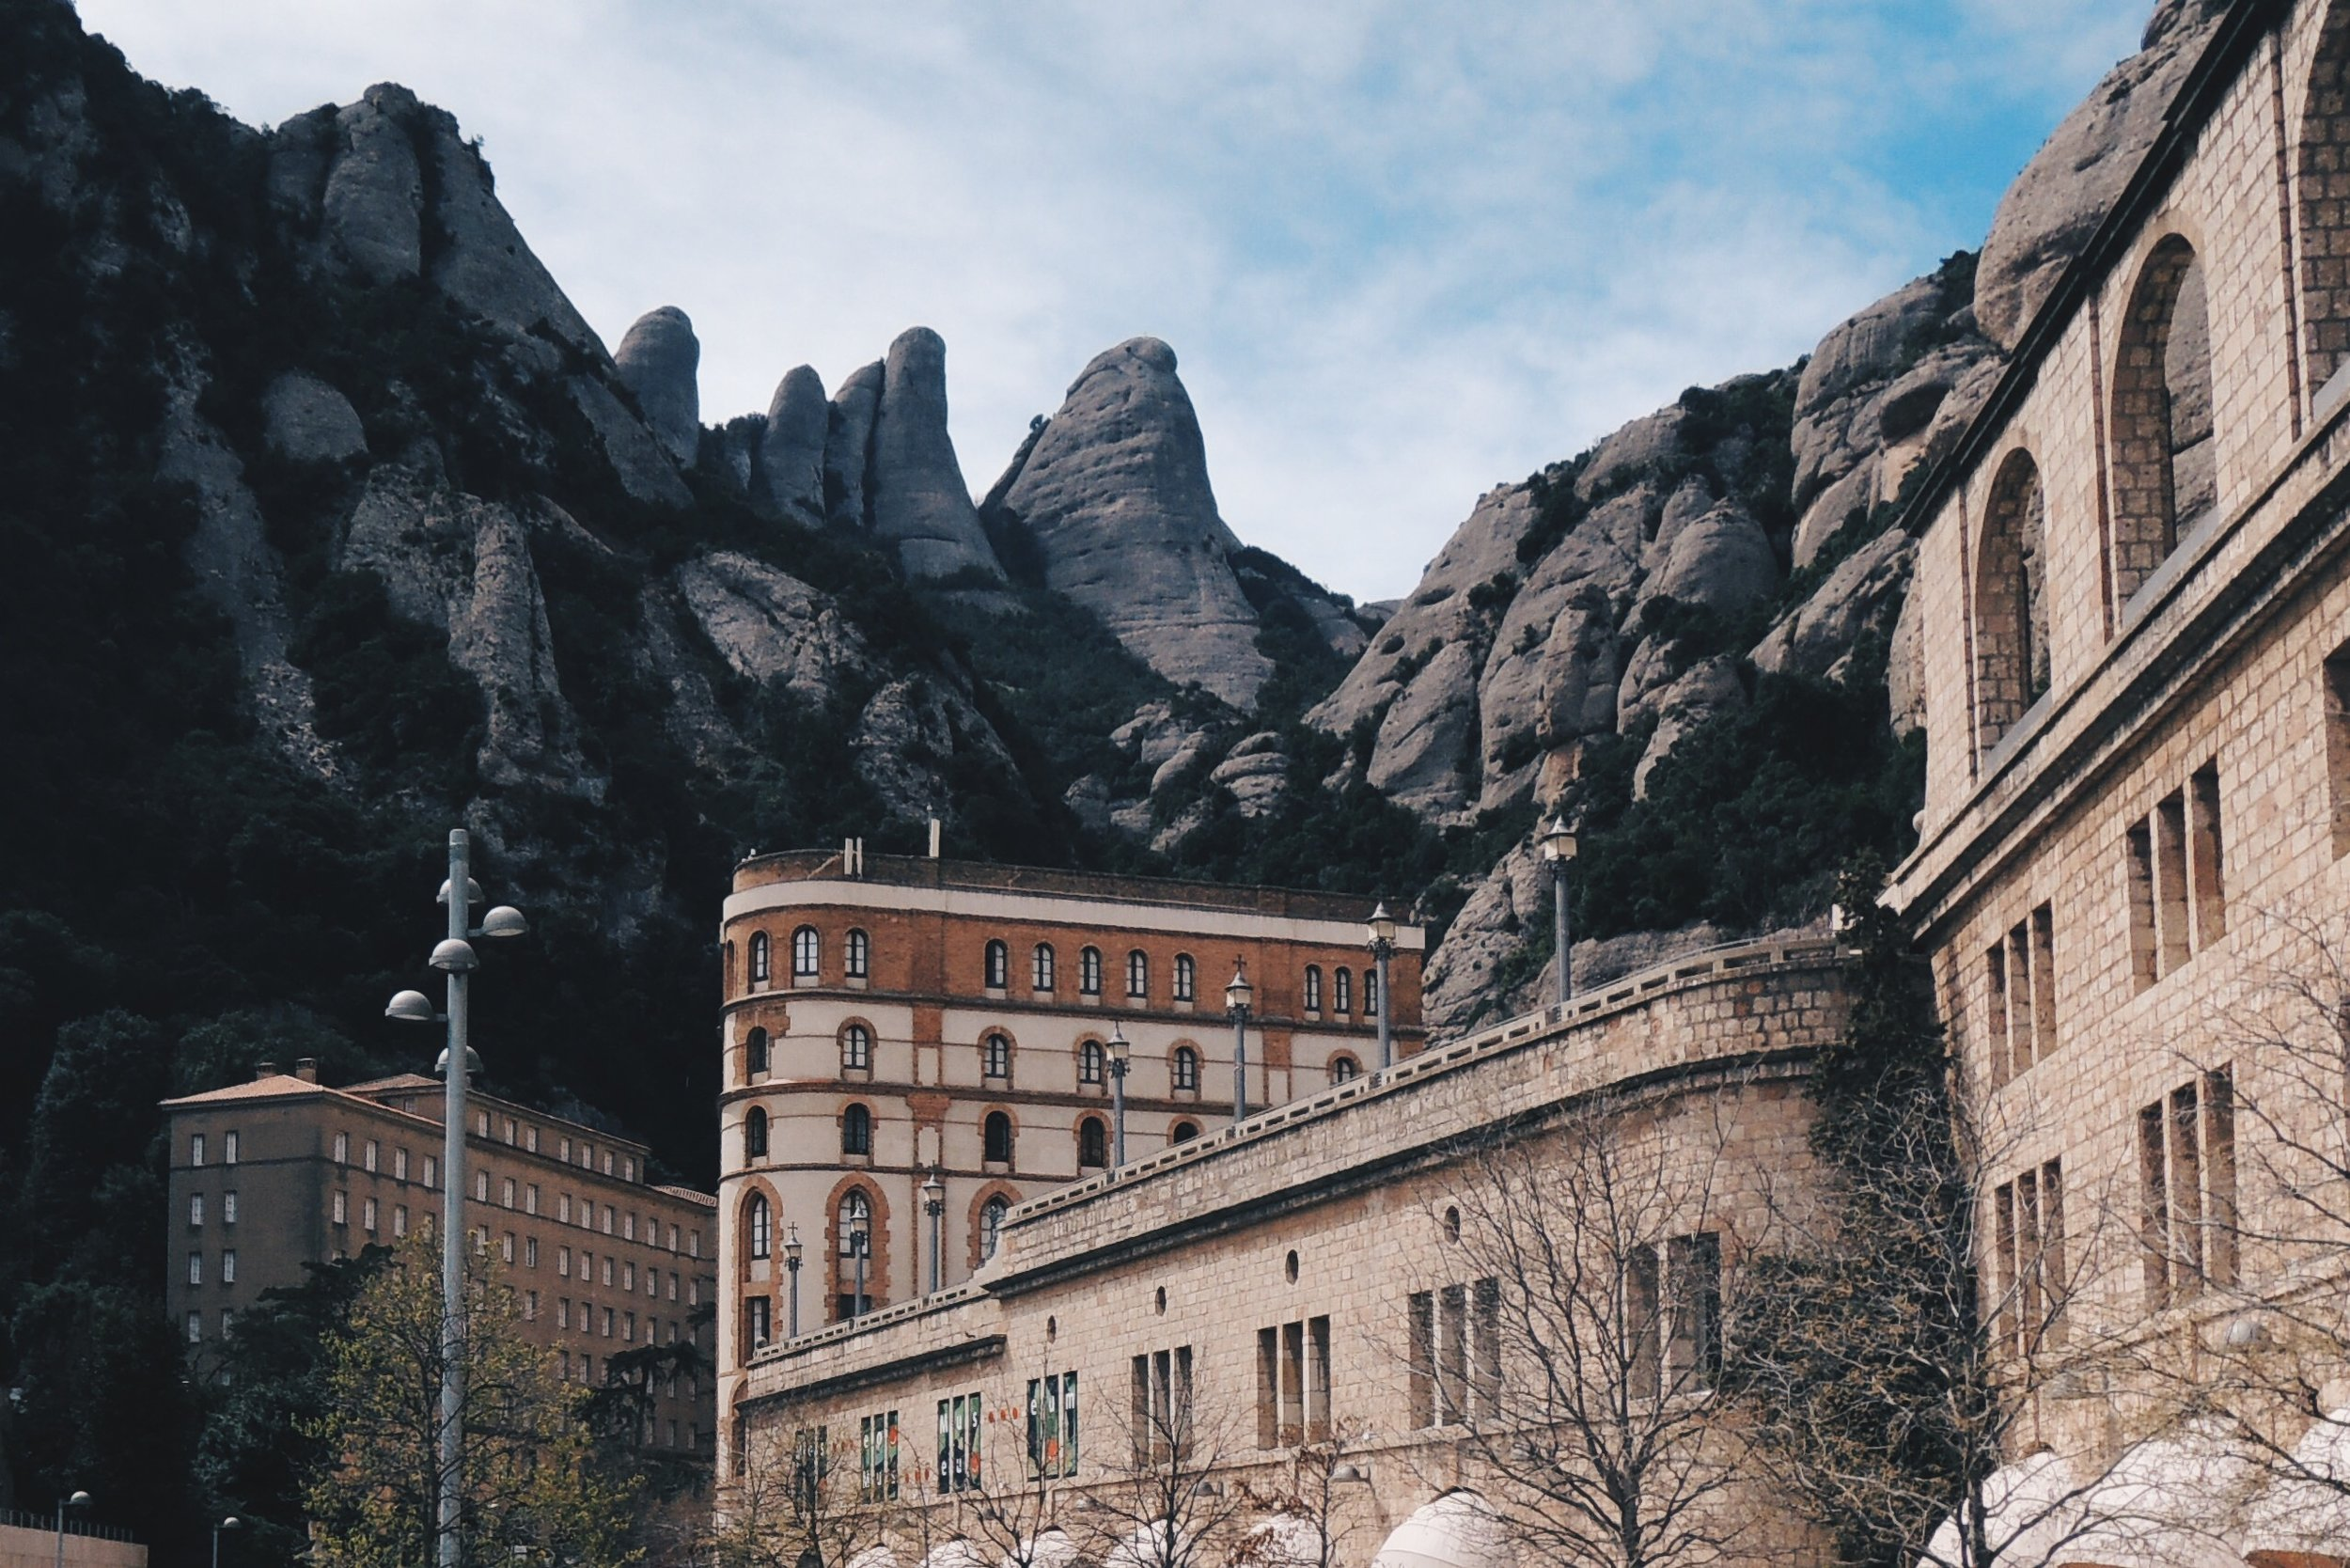 One of the more popular day trips out of Barcelona to Montserrat